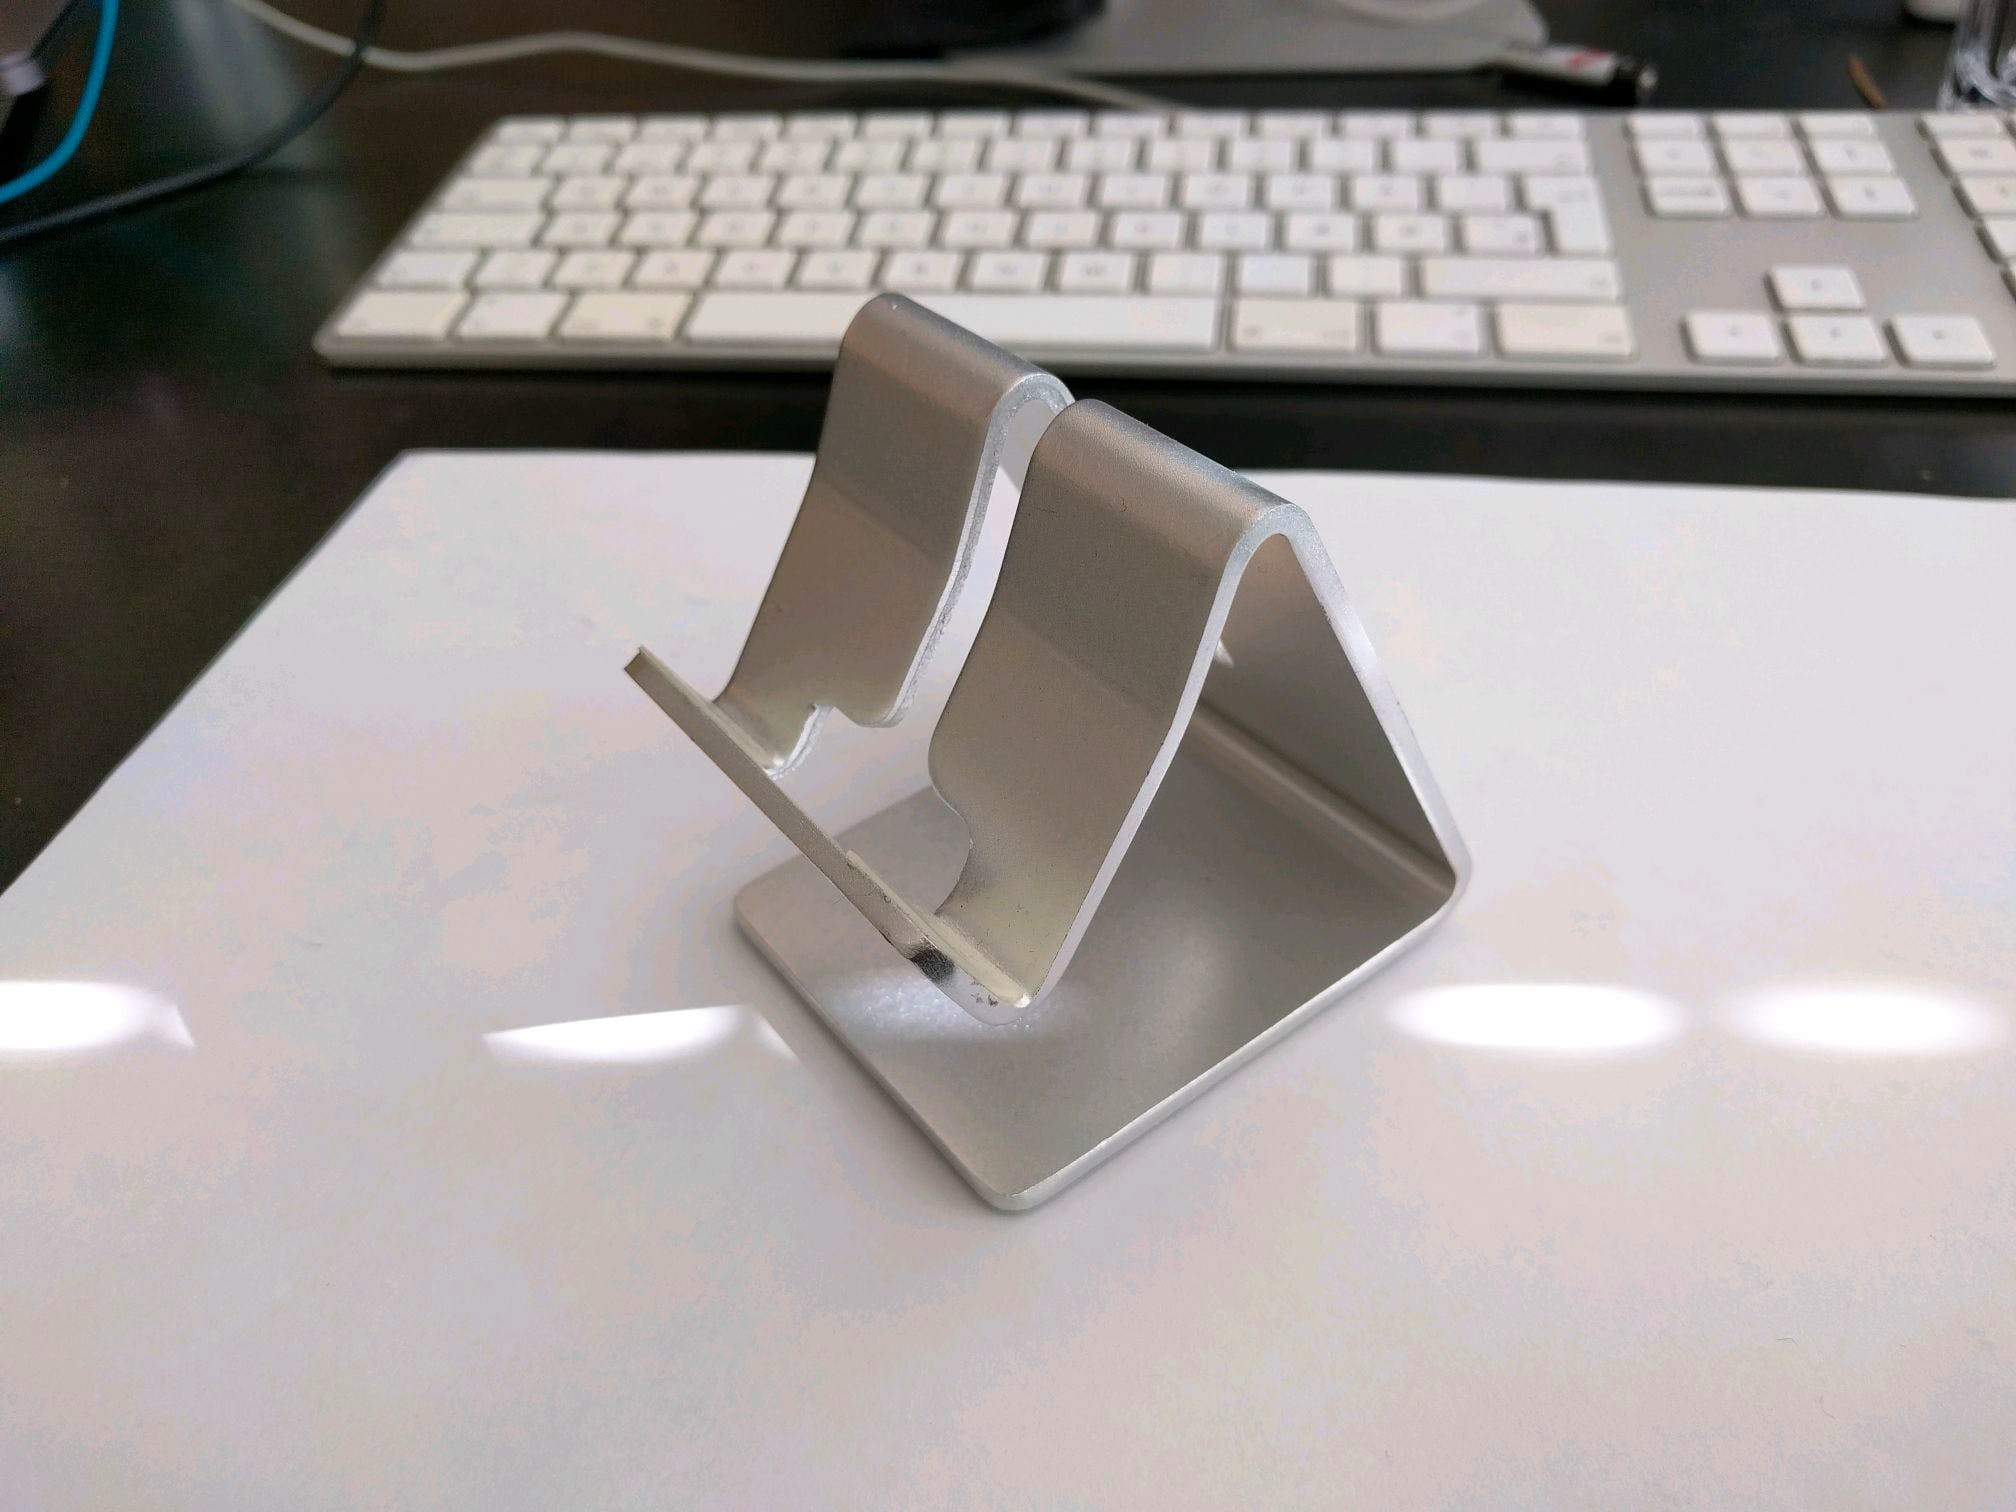 IPhone or Android stand